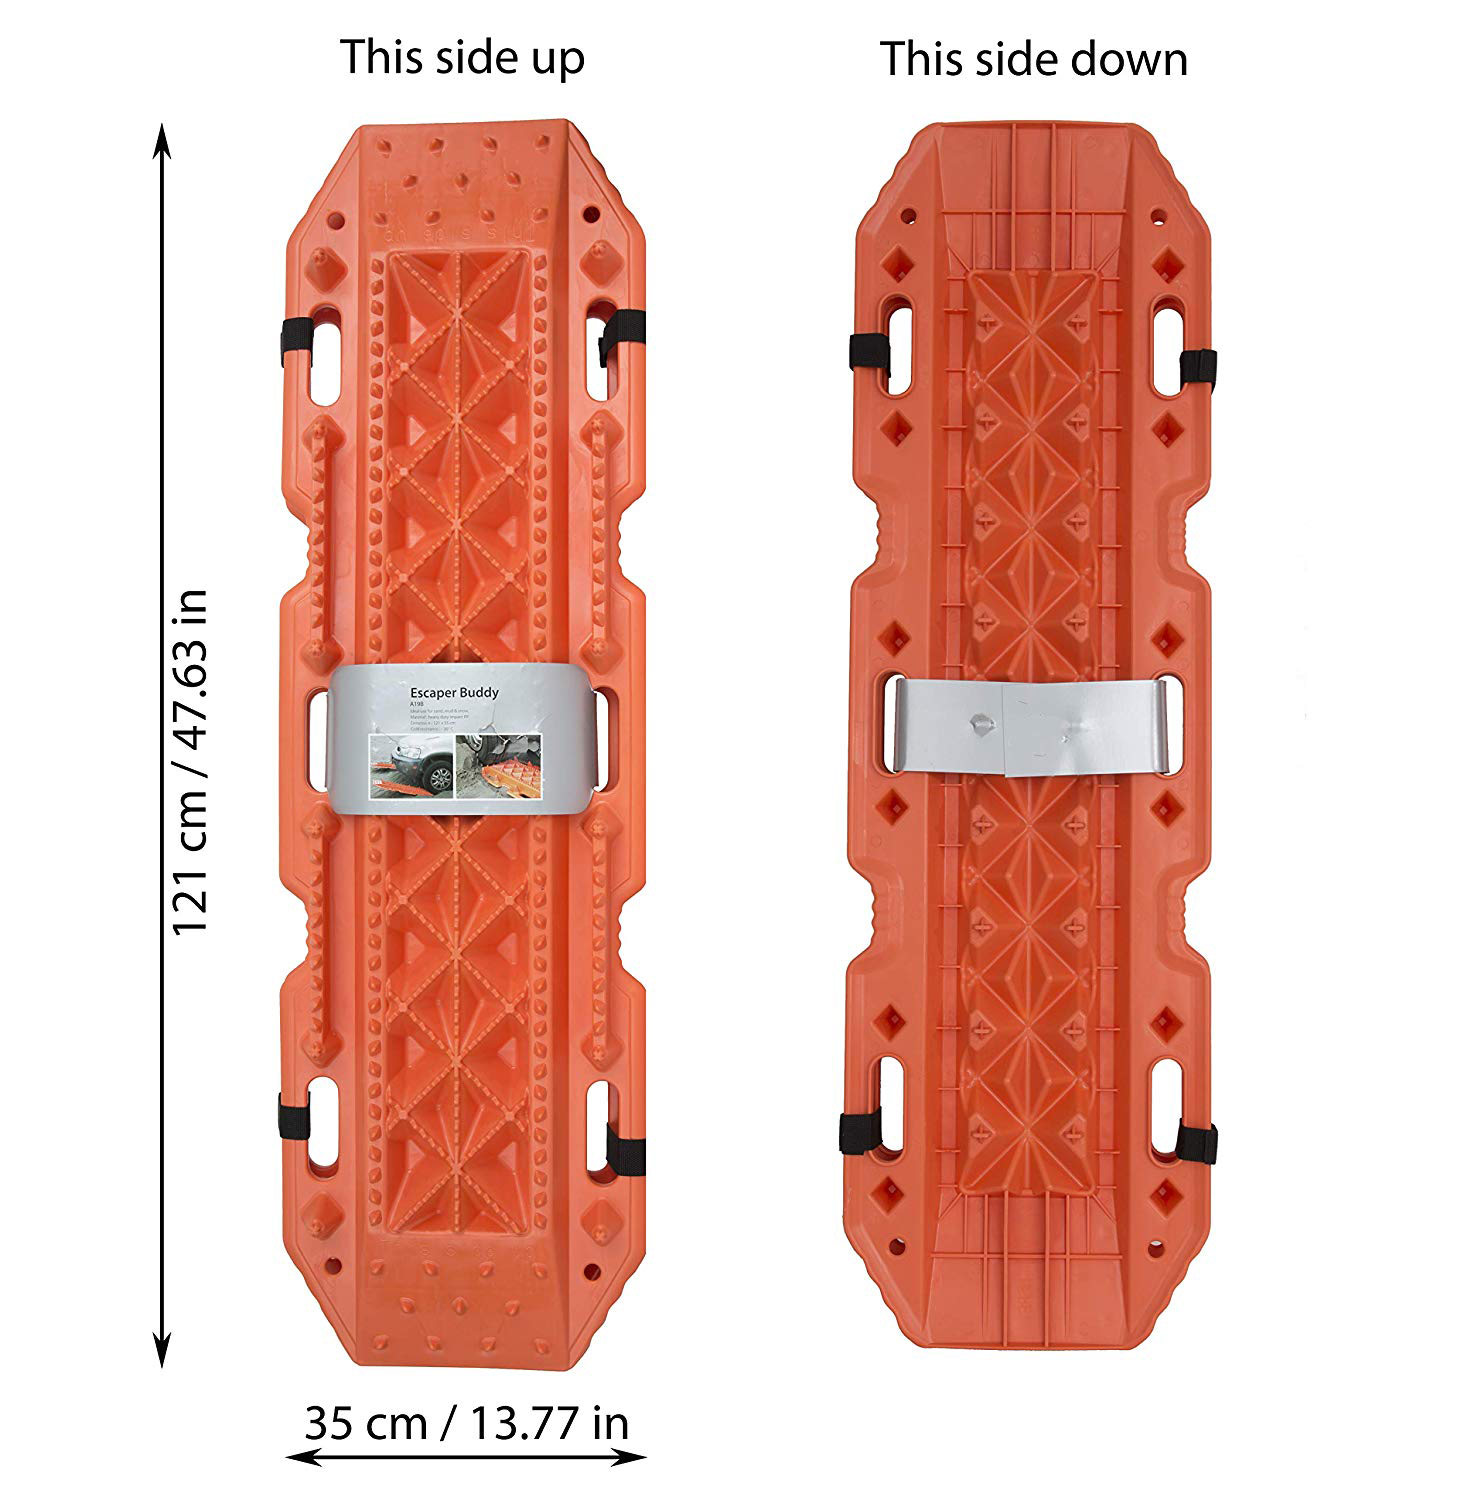 Snow Vehicle Extraction Sand Set of 2 Black FIREBUG Escaper Buddy Traction Mats for Off-Road Mud